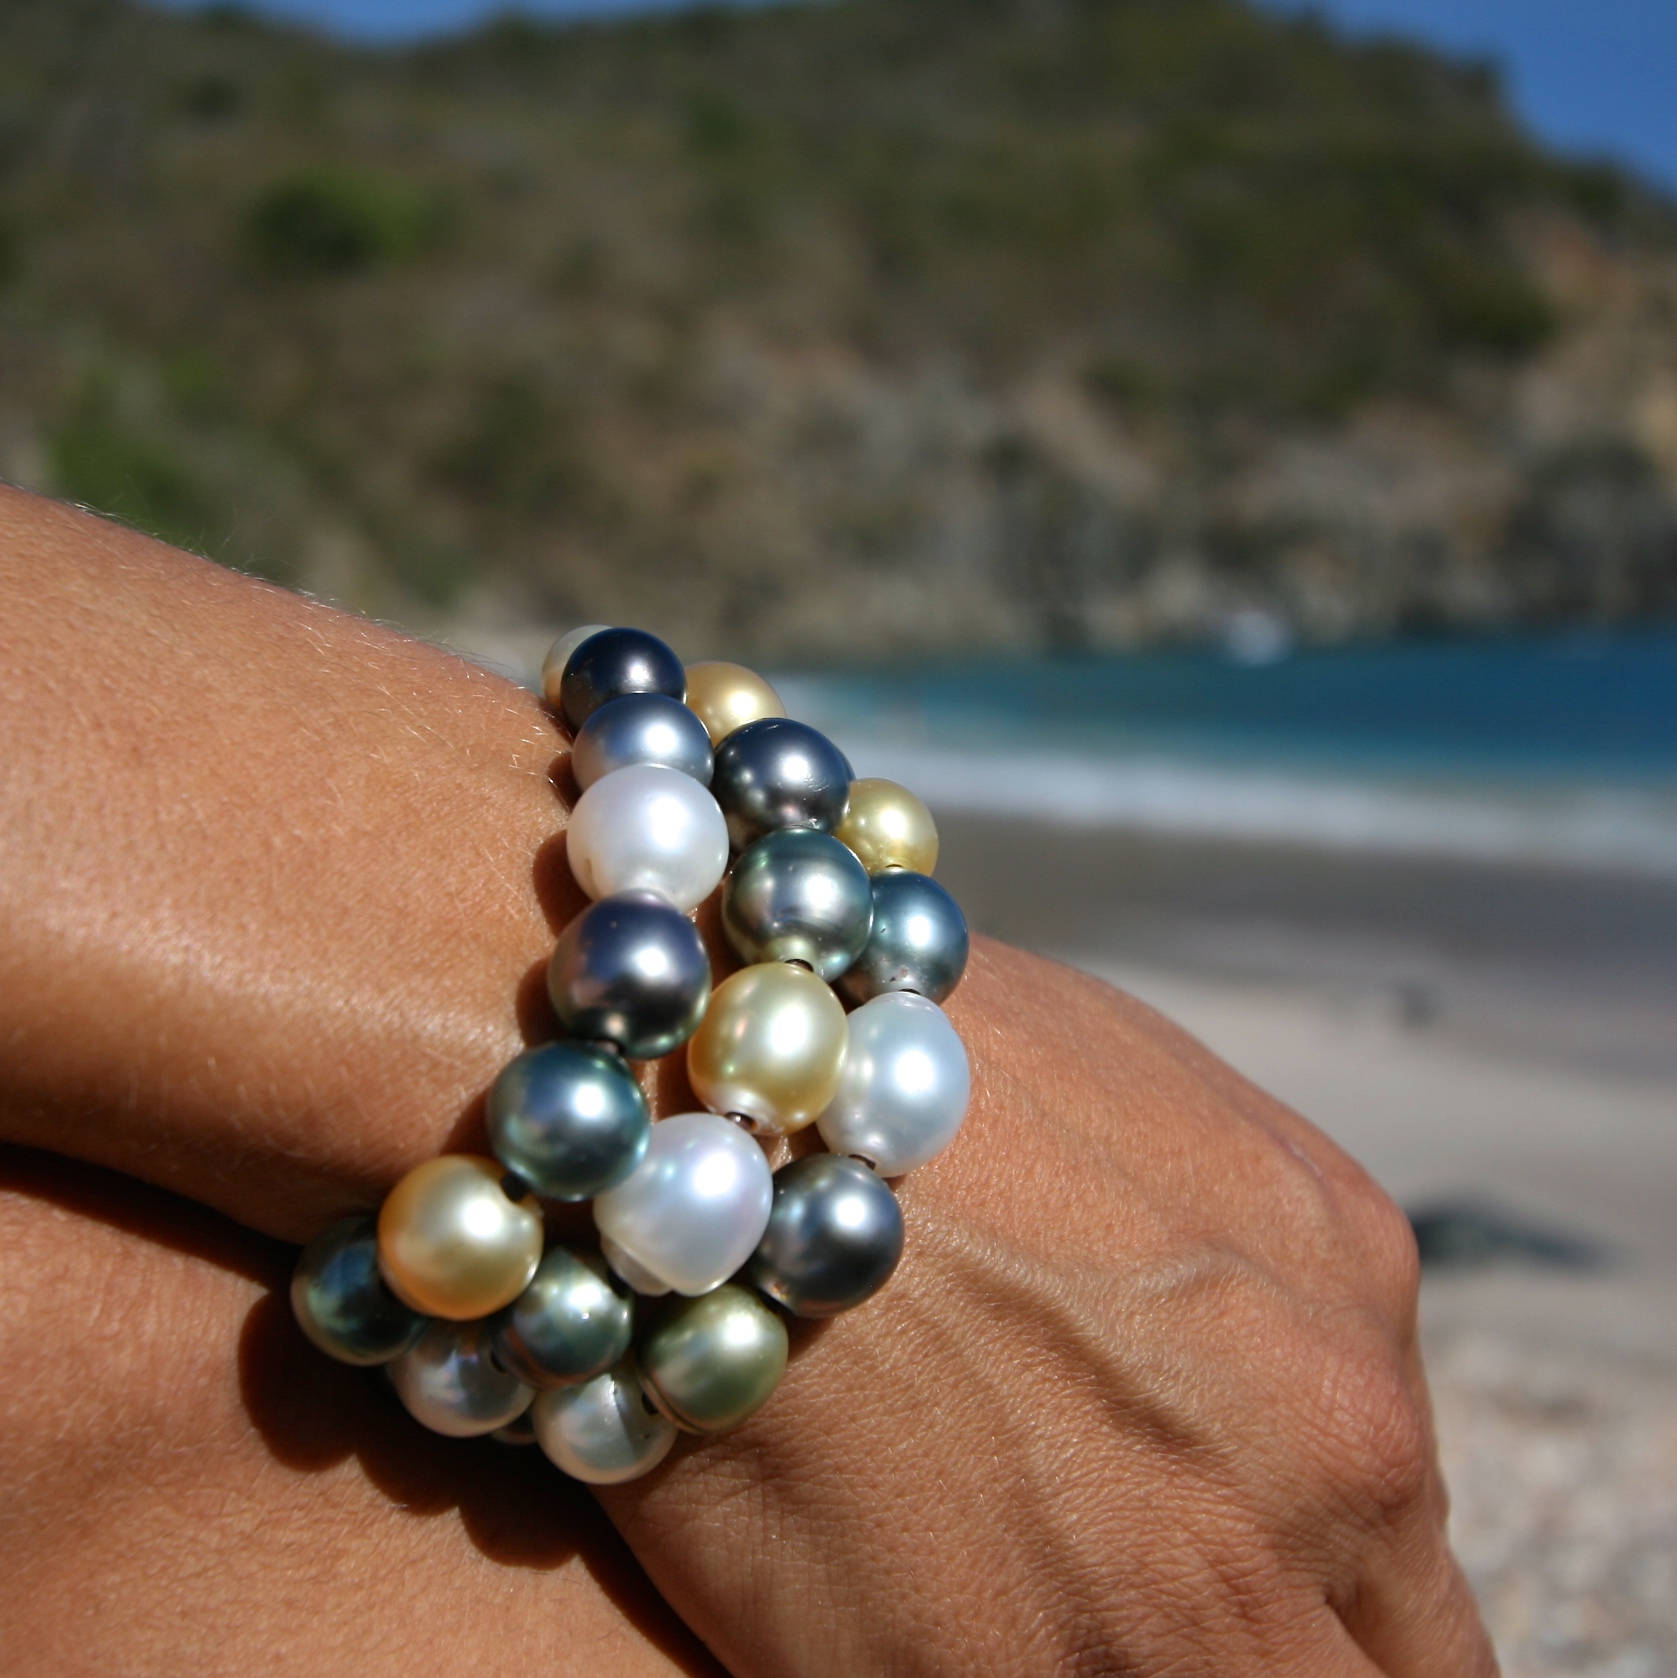 3 leather strands of fine multicolor pearl strung with Tahitian and Australian pearls, St Barth, gift for xmas, custom super chic bracelet